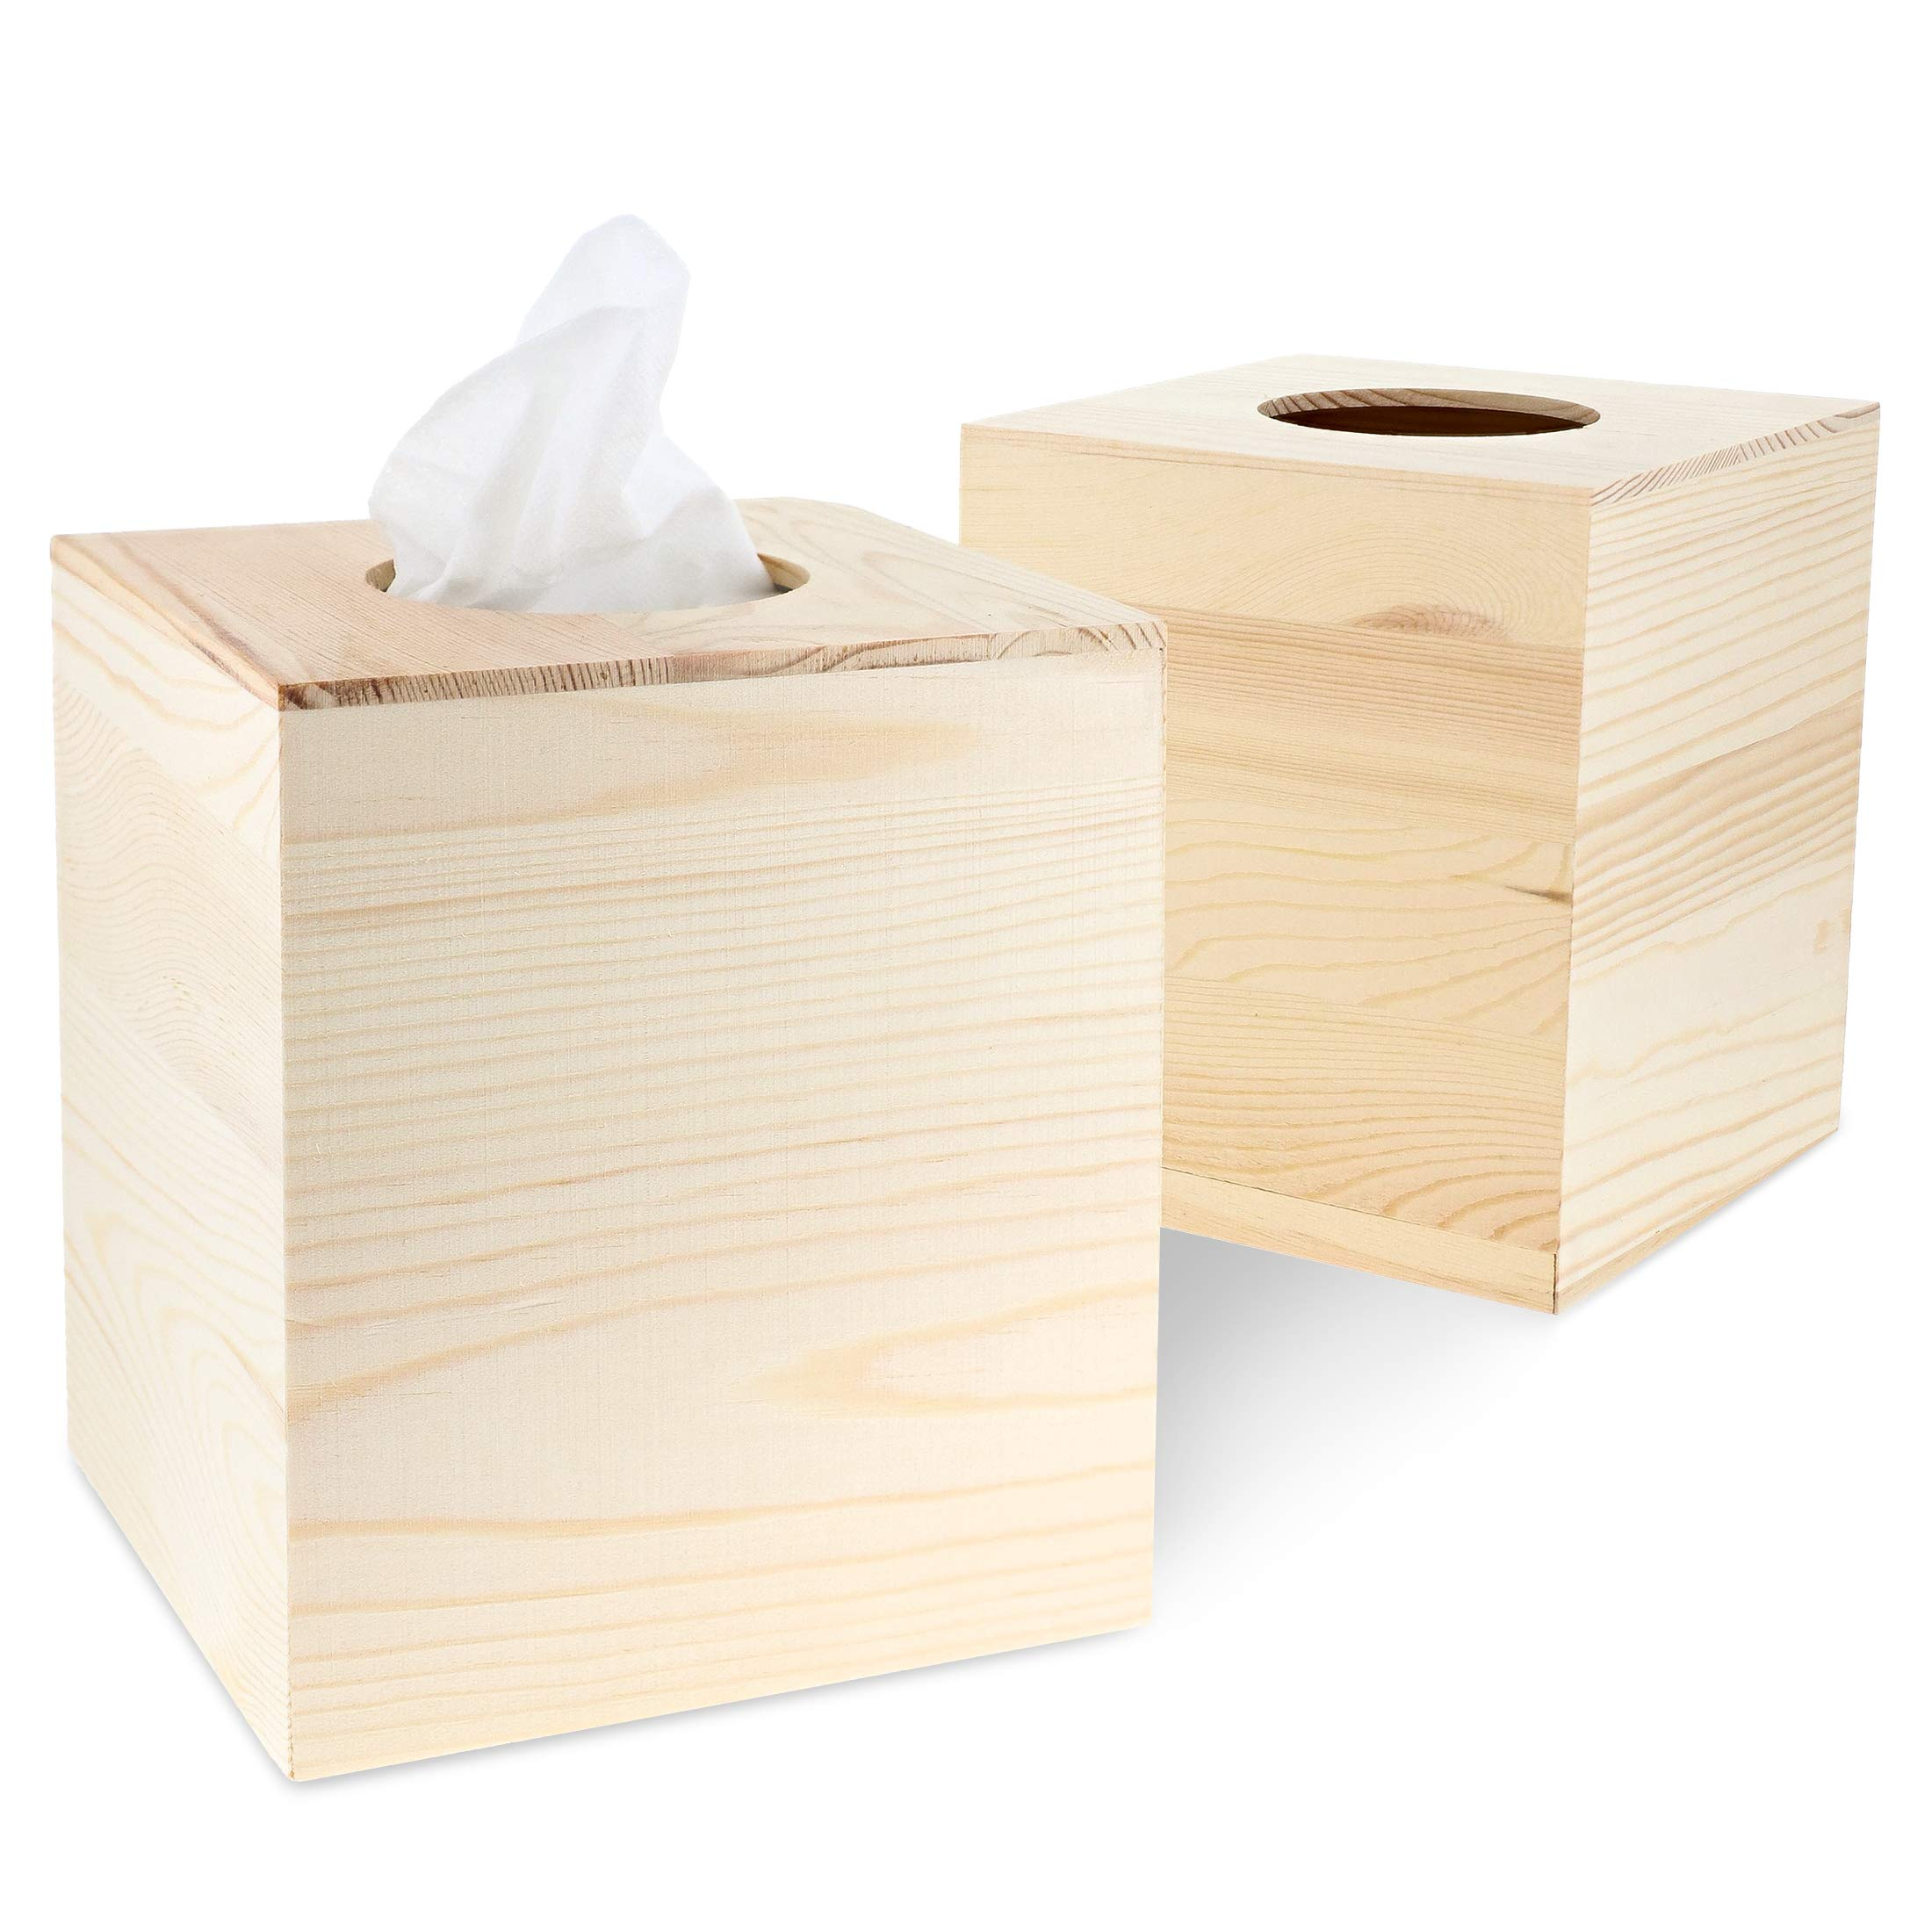 Juvale 2-Pack Unfinished Natural Wood Tissue Box Cover Holder for DIY Wooden Crafts, 5 x 5.5 Inches by Juvale